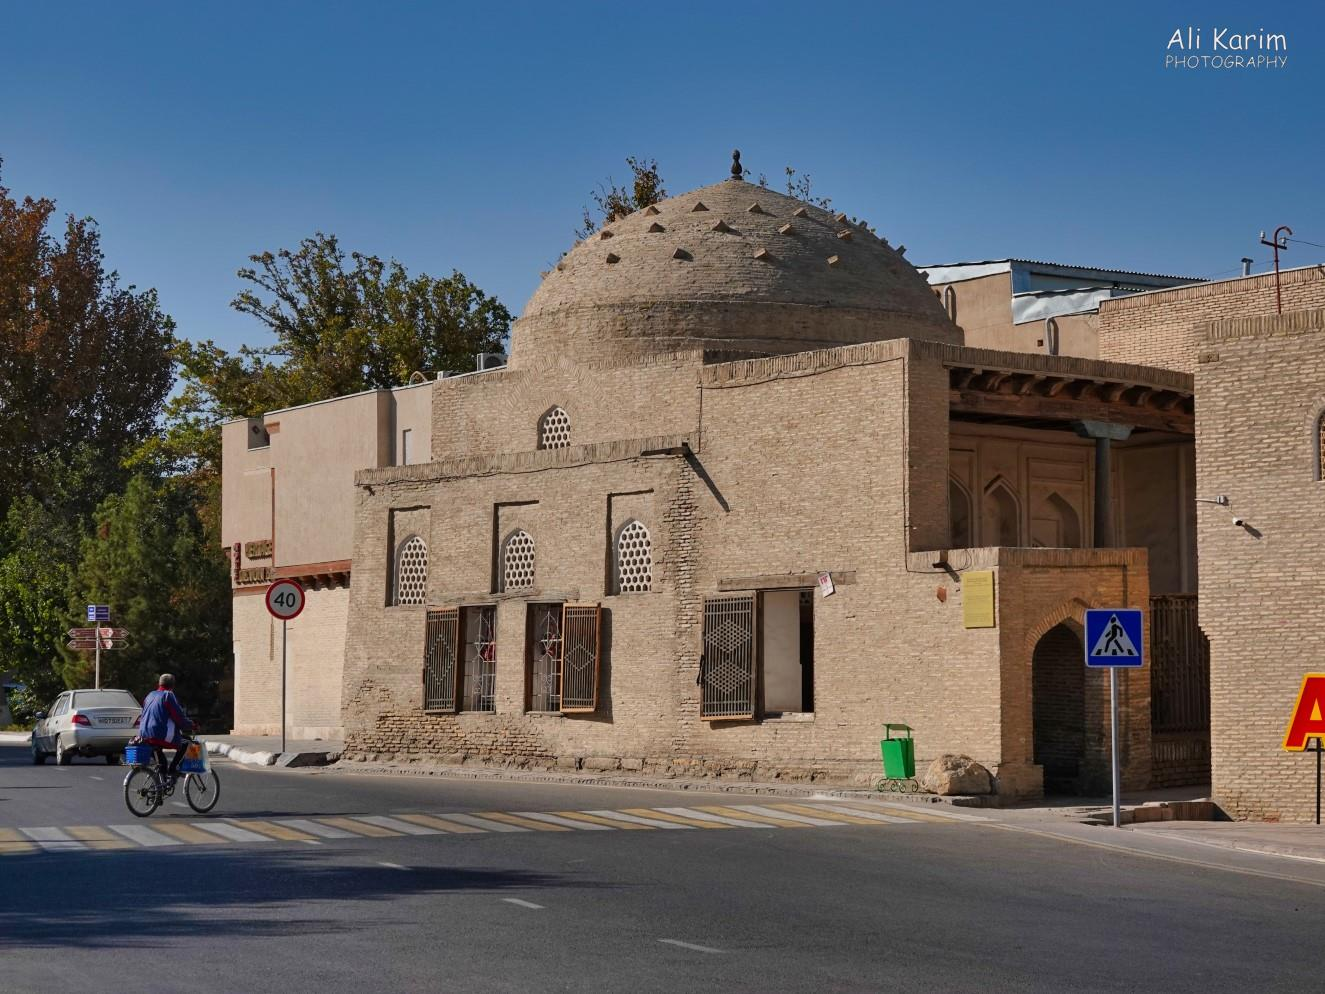 Bukhara, Oct 2019, Another style of mosque